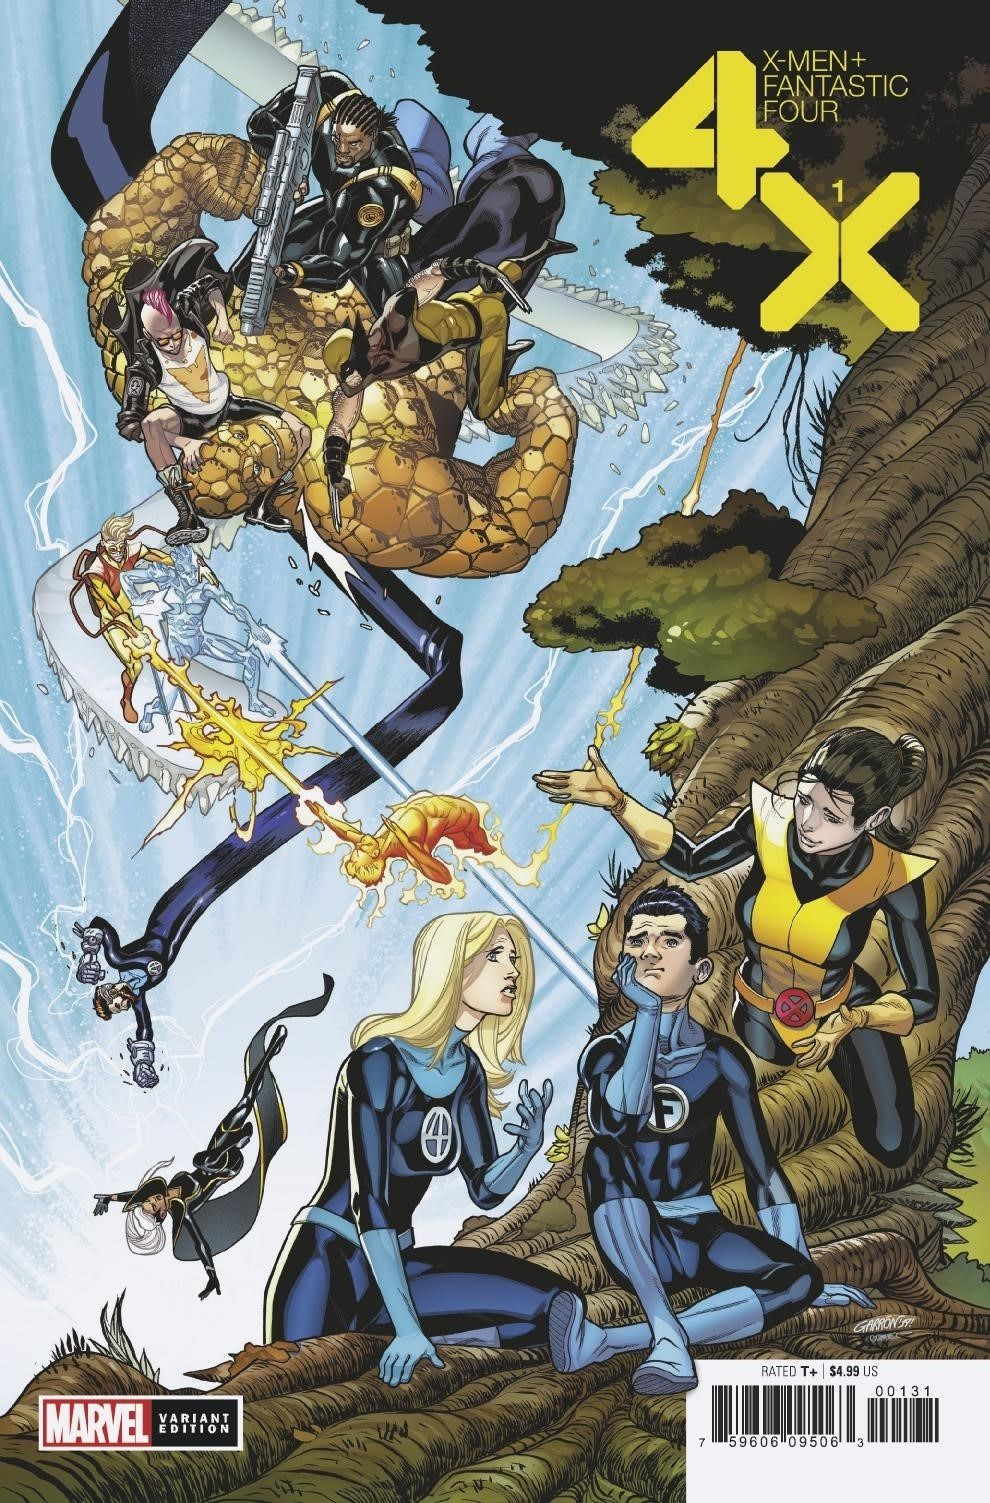 X Men Fantastic Four 1 Variant Cover By Javier Garron In 2020 Fantastic Four Comics X Men